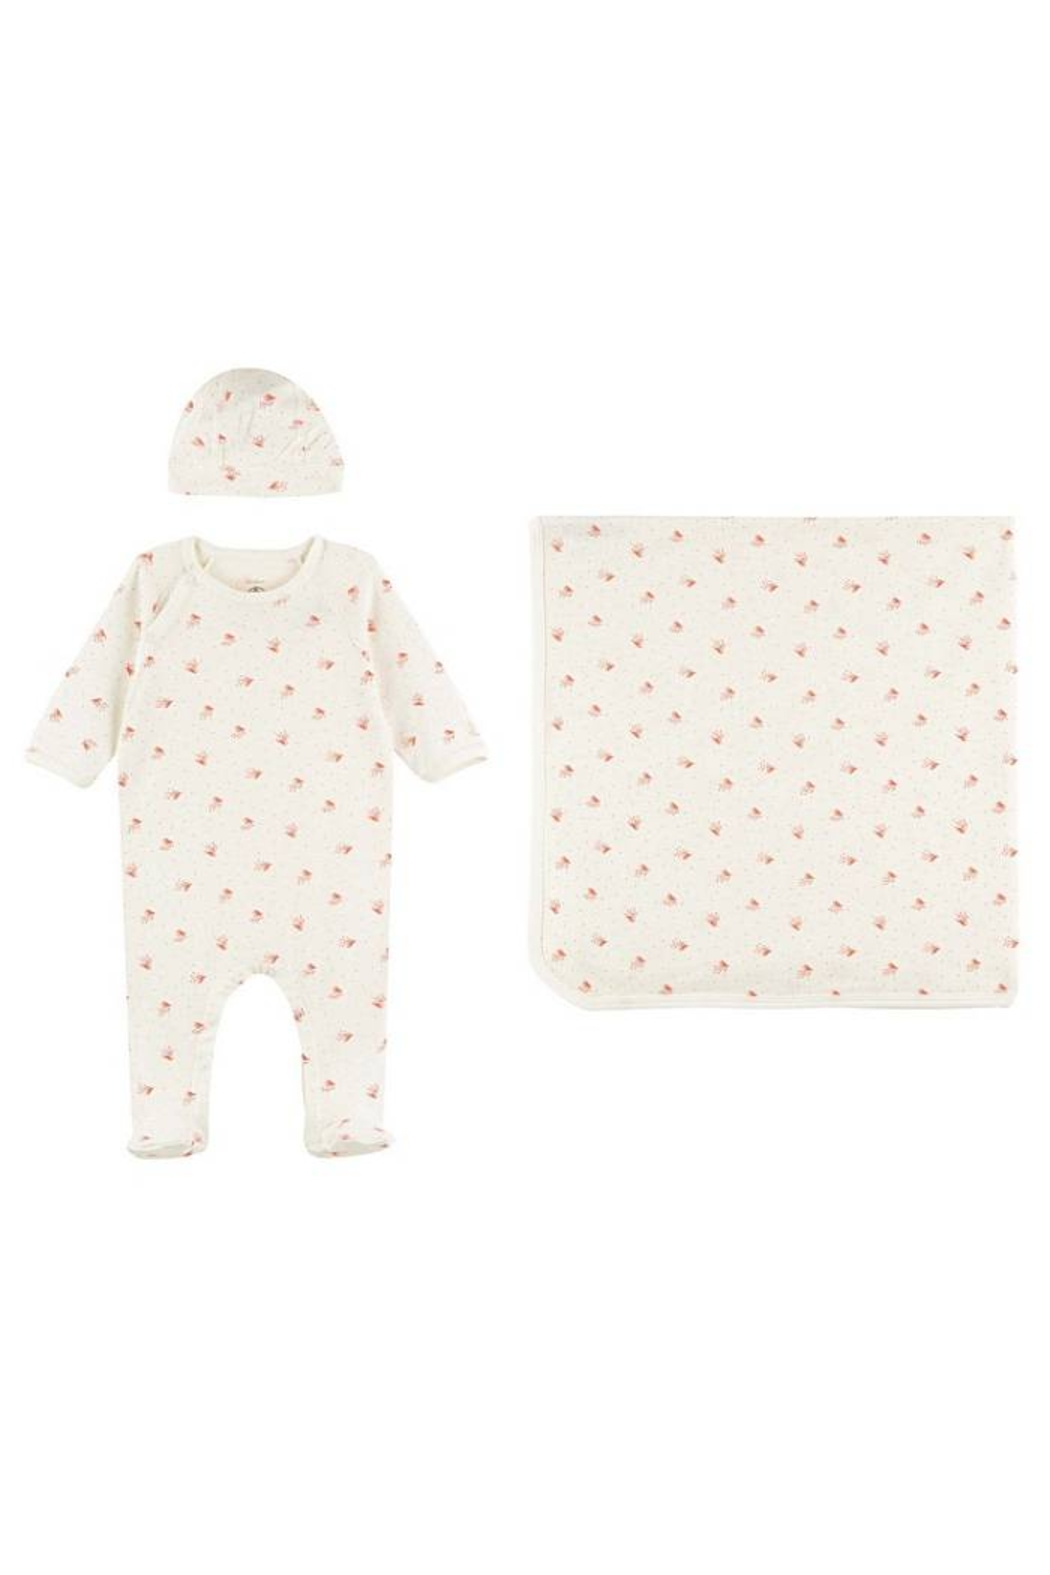 Petit Bateau Organic Cotton Bird Print 3 Piece Set For Baby Girls (Blanket,Footie & Beanie) - Main Image